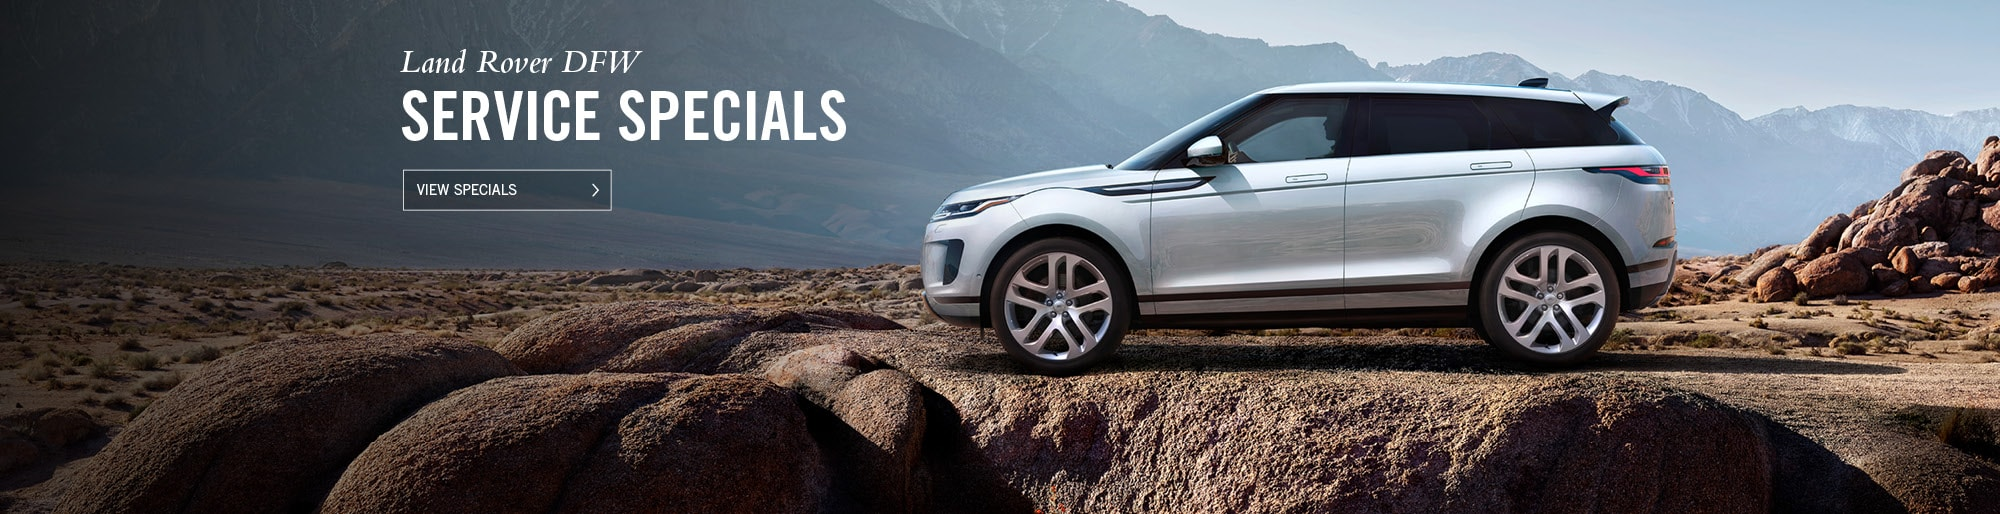 Land Rover Fort Worth >> Land Rover Fort Worth Best Upcoming Car Release